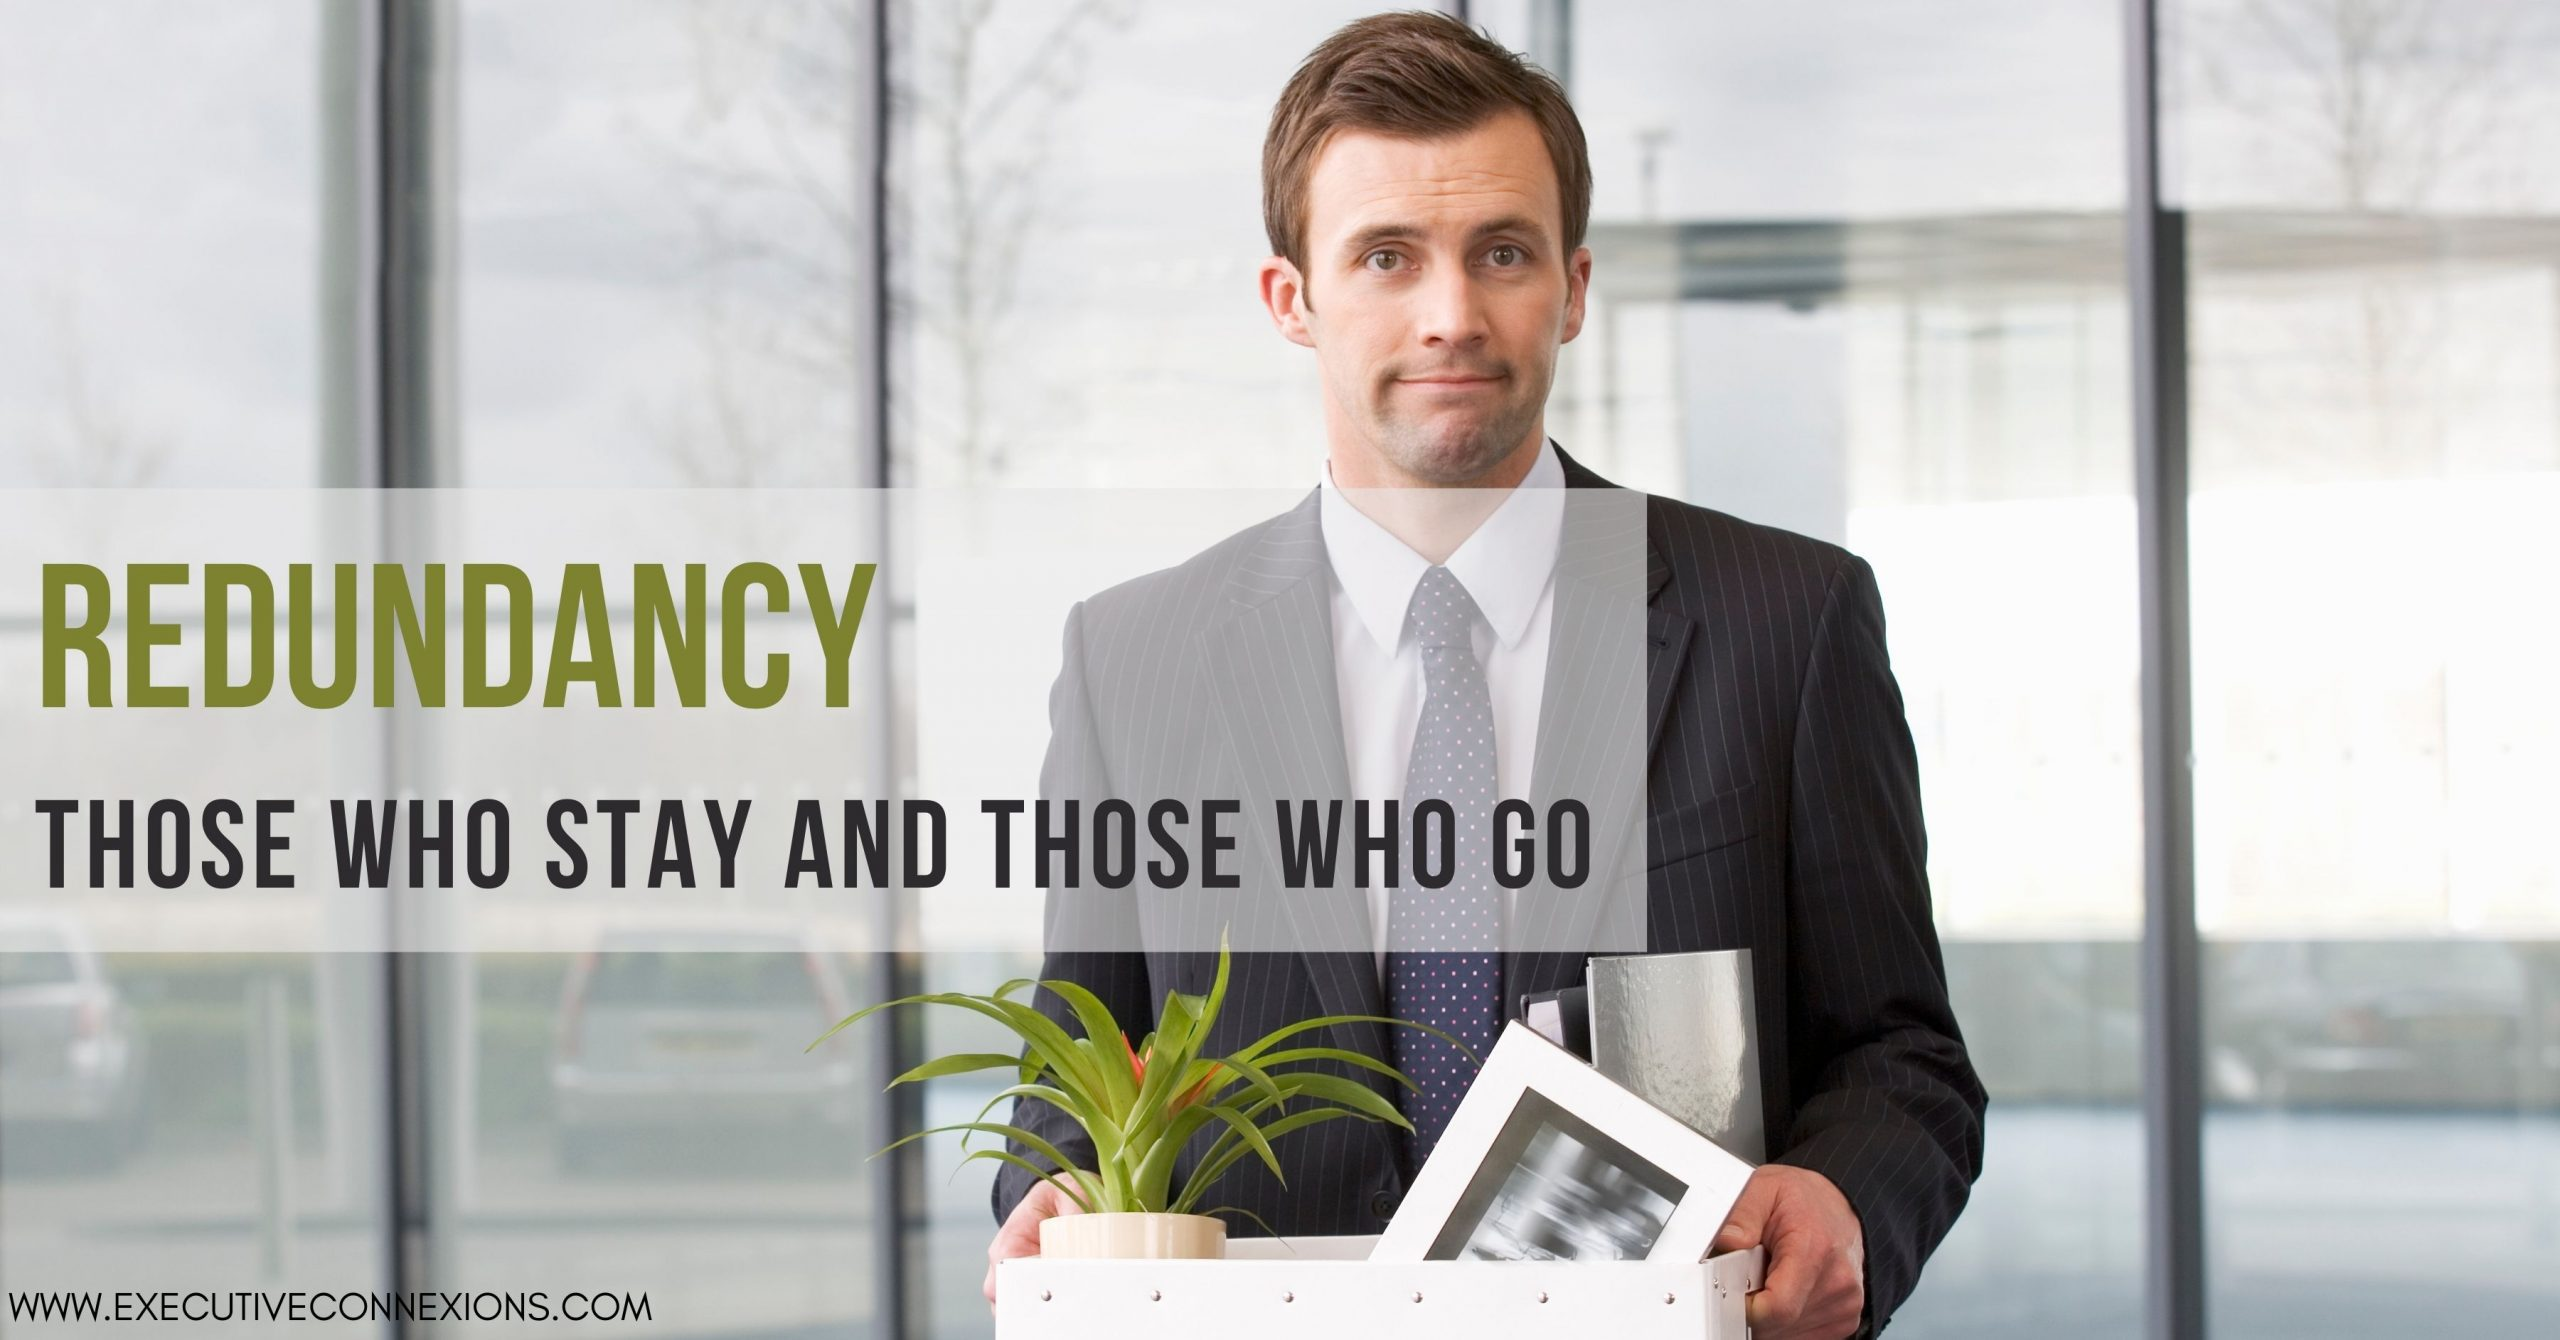 Redundancy & Outplacement: those who stay and those who go